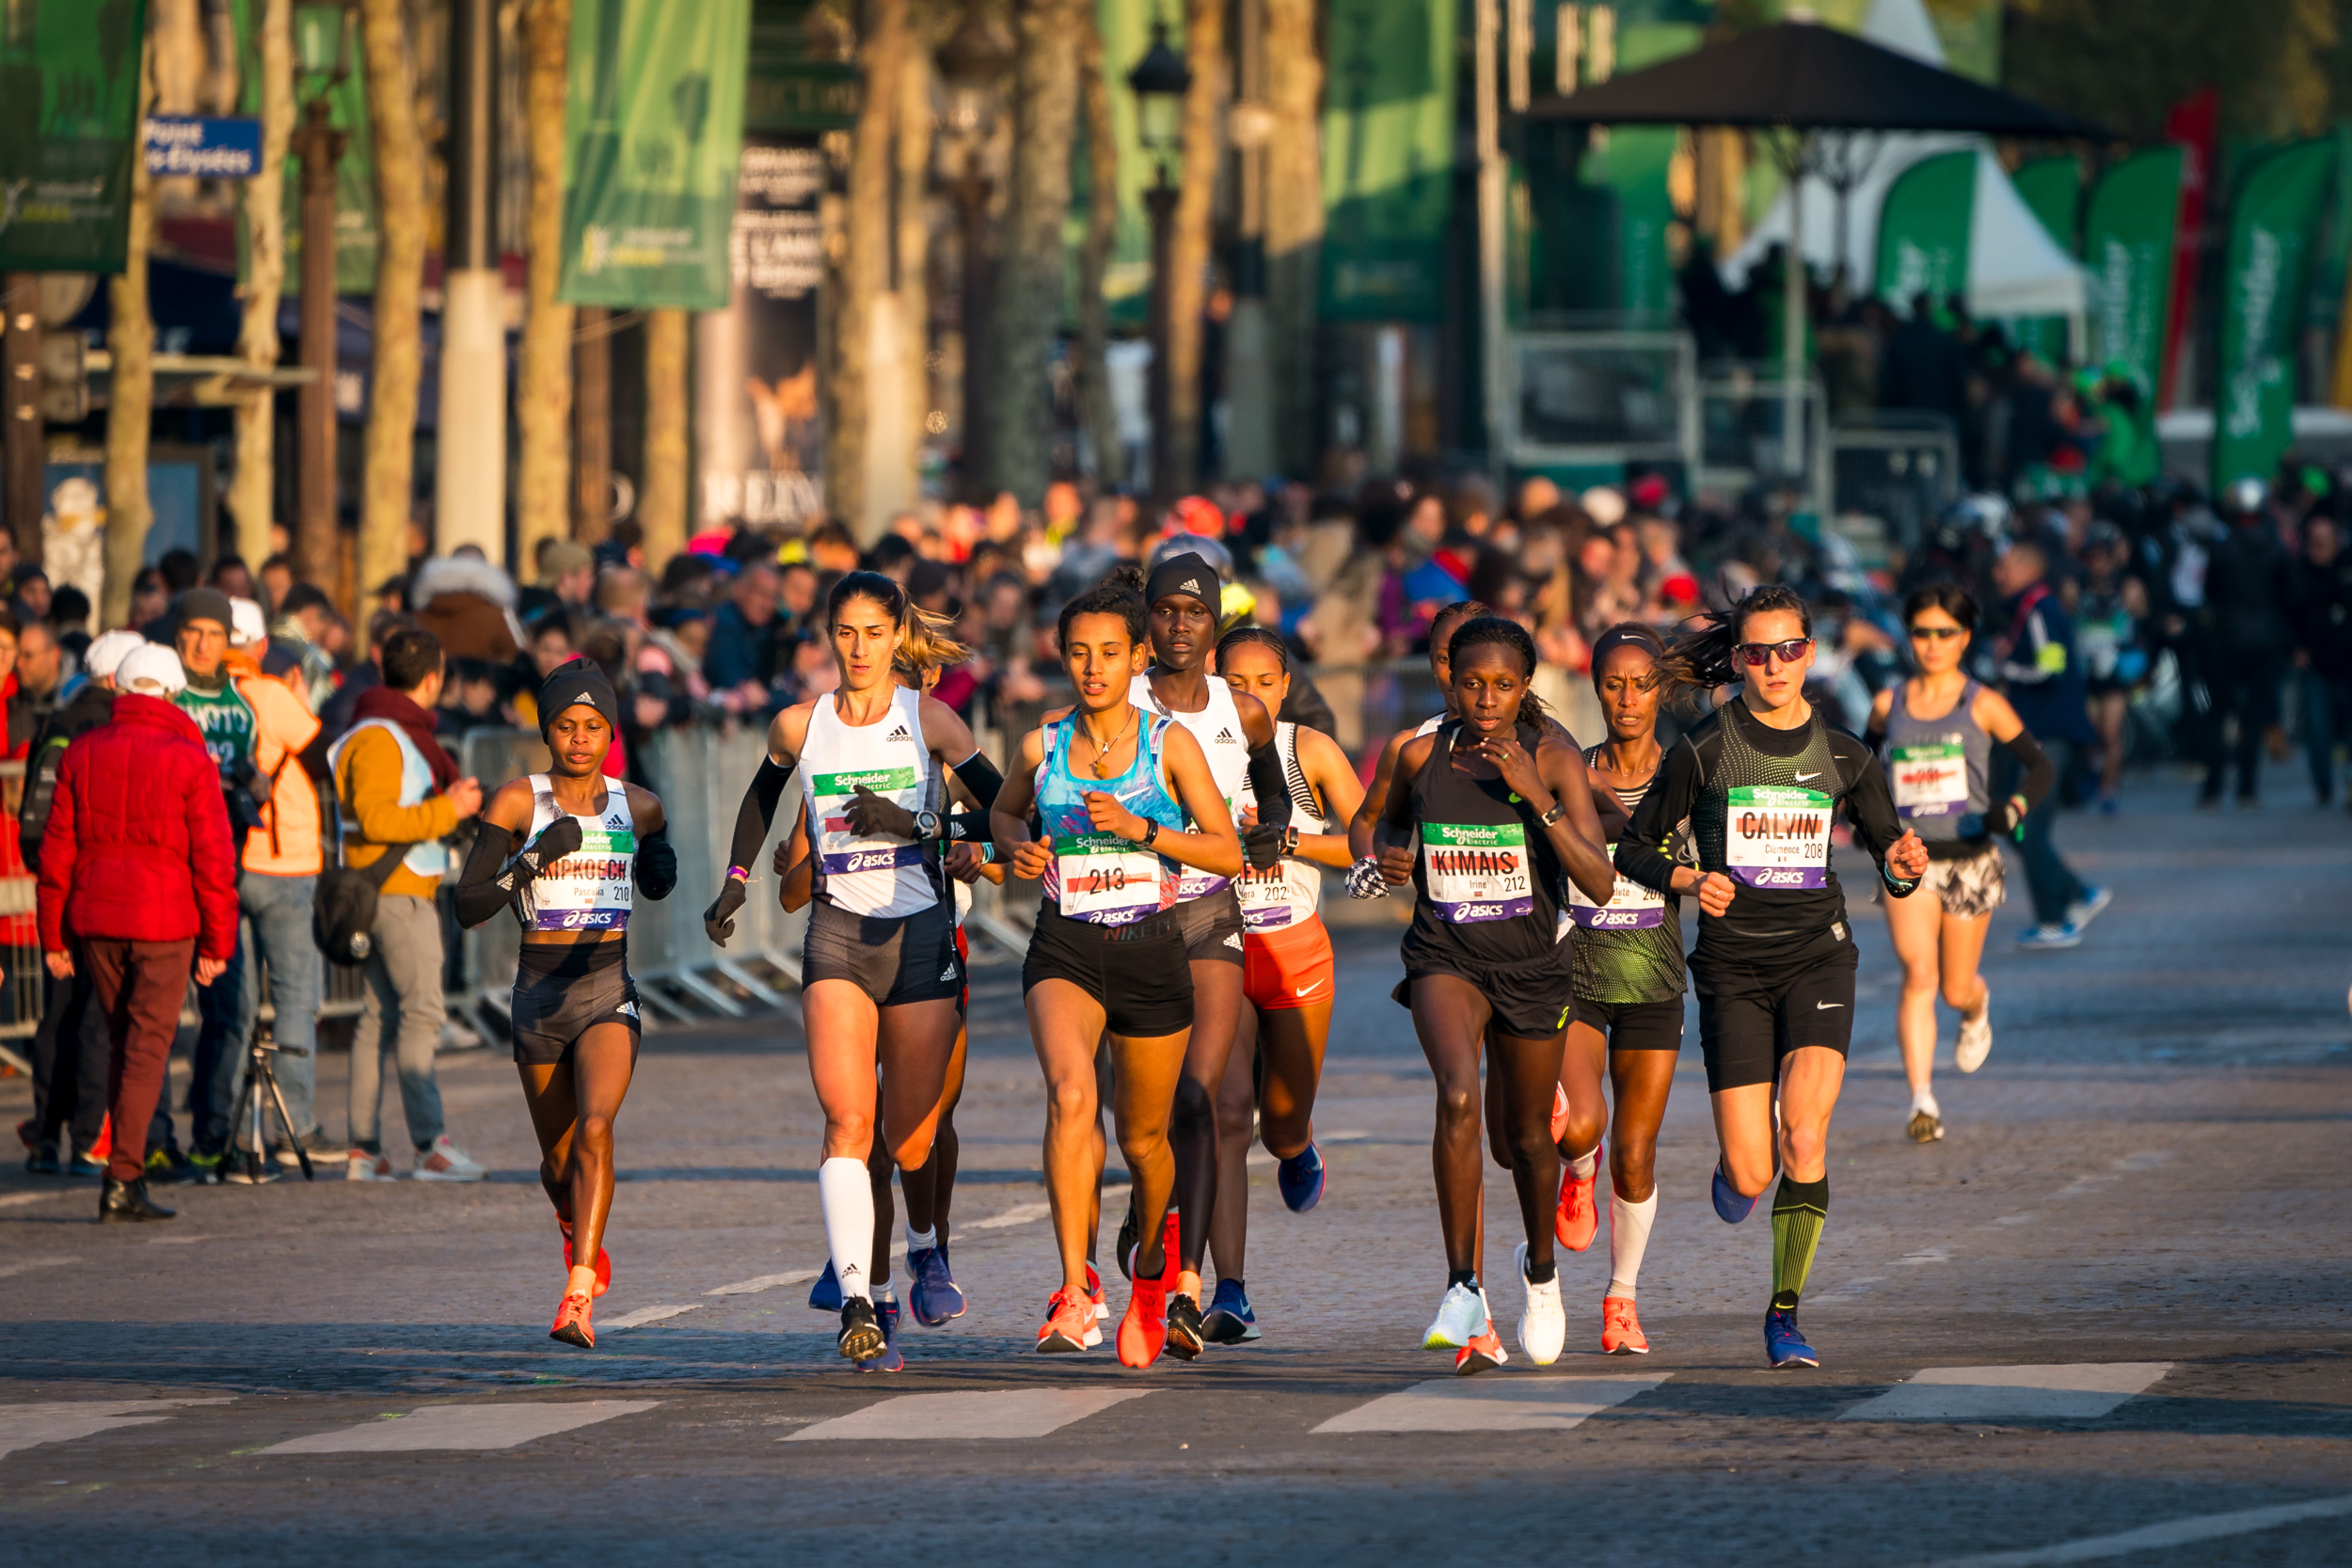 BMW_Marathon Paris 2019_Florian Leger_SHARE & DARE_HD_ N°-38.jpg